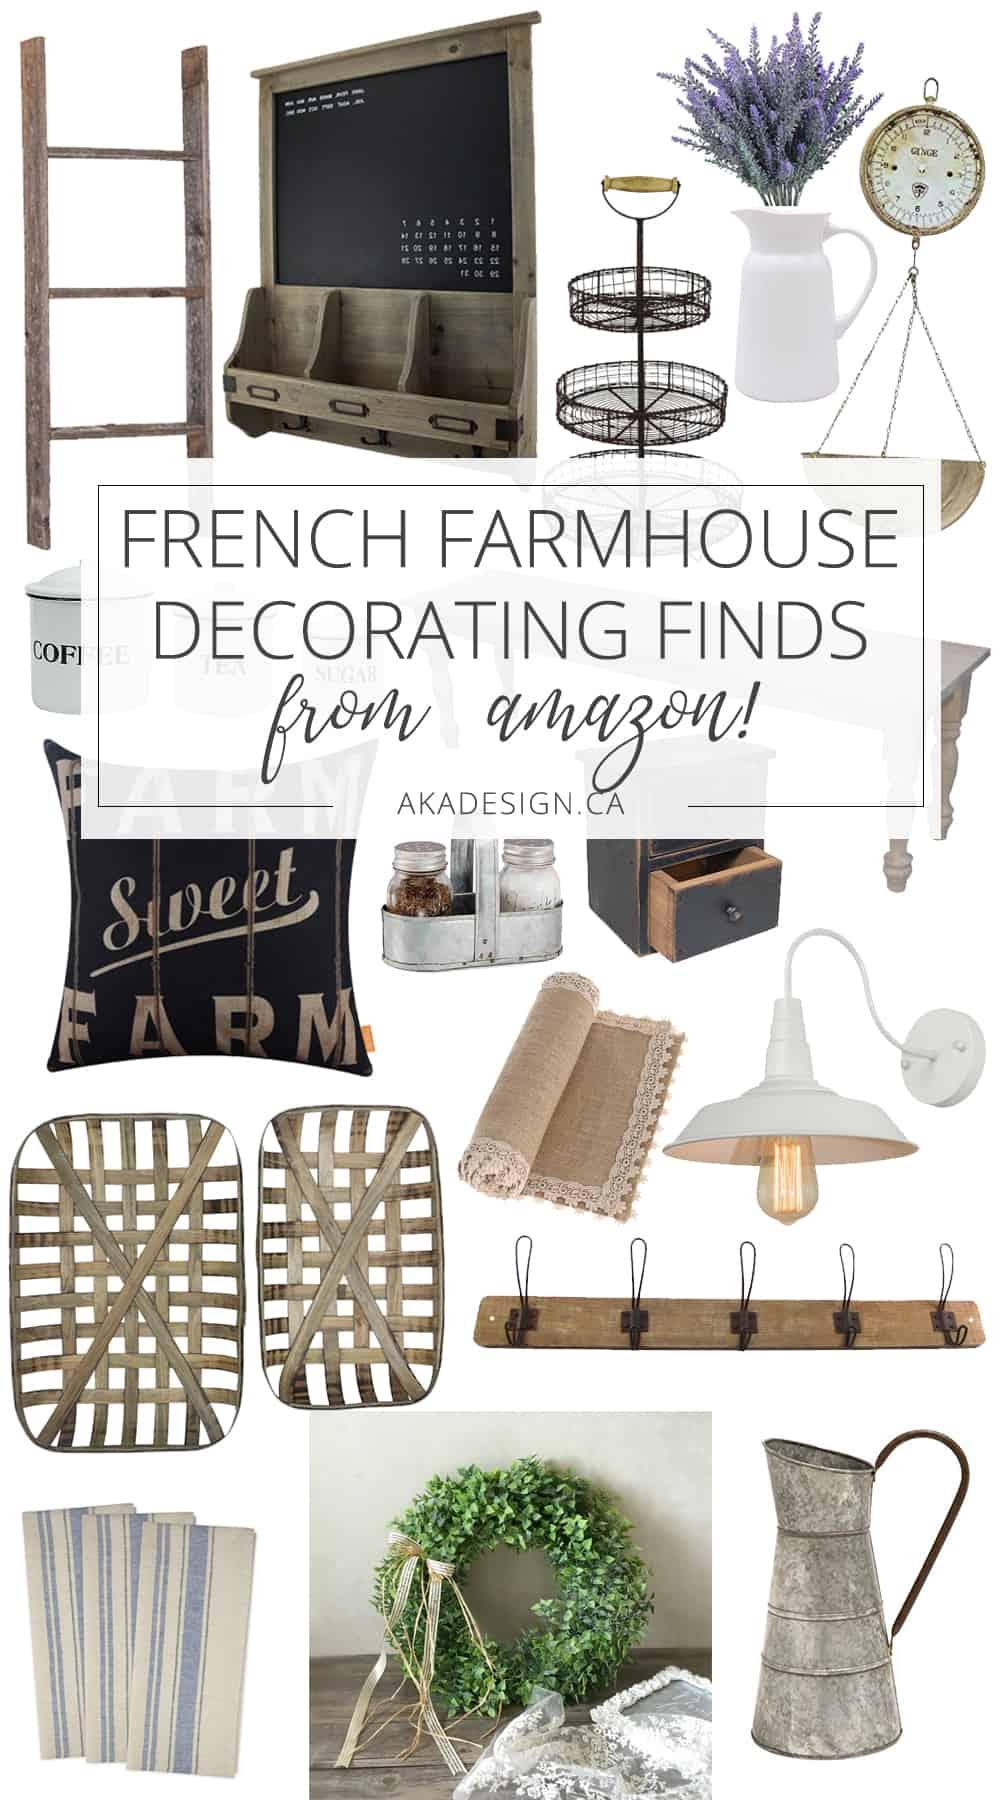 French Farmhouse Decorating Finds on Amazon